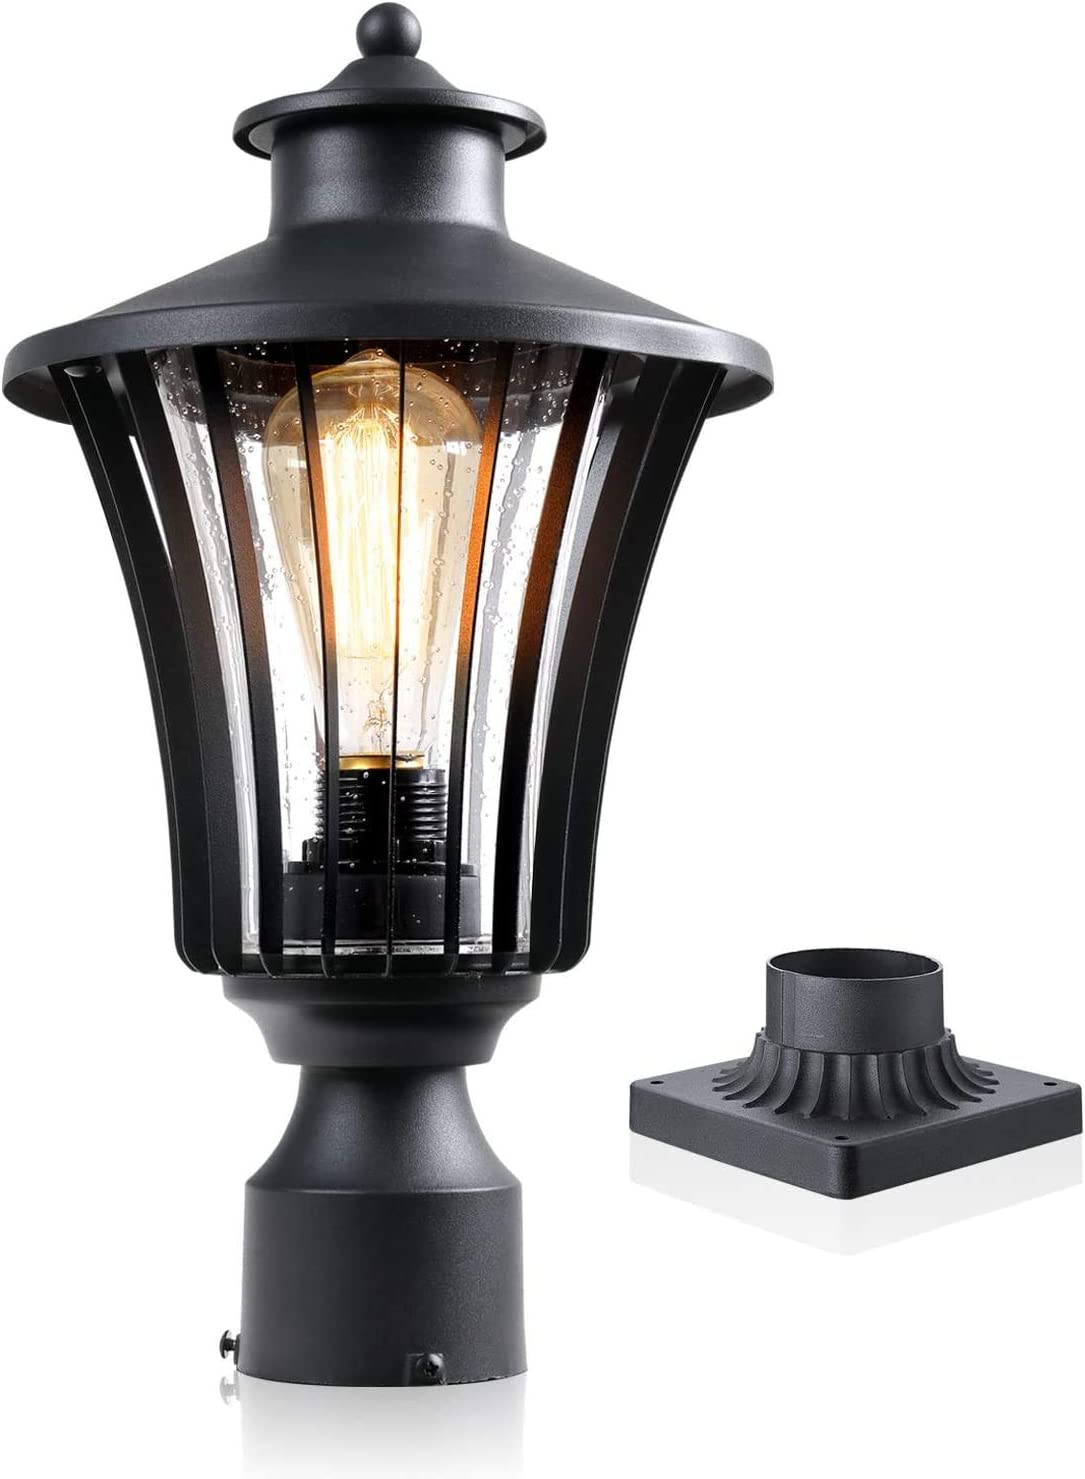 JAZAVA Outdoor Post Light Fixture, Exterior Post Lantern One-Light Mounted Street Light for Patio Entryway with 3-Inch Pier Mount Base, Pier Mount Lights with Black Finish Seeded Glass